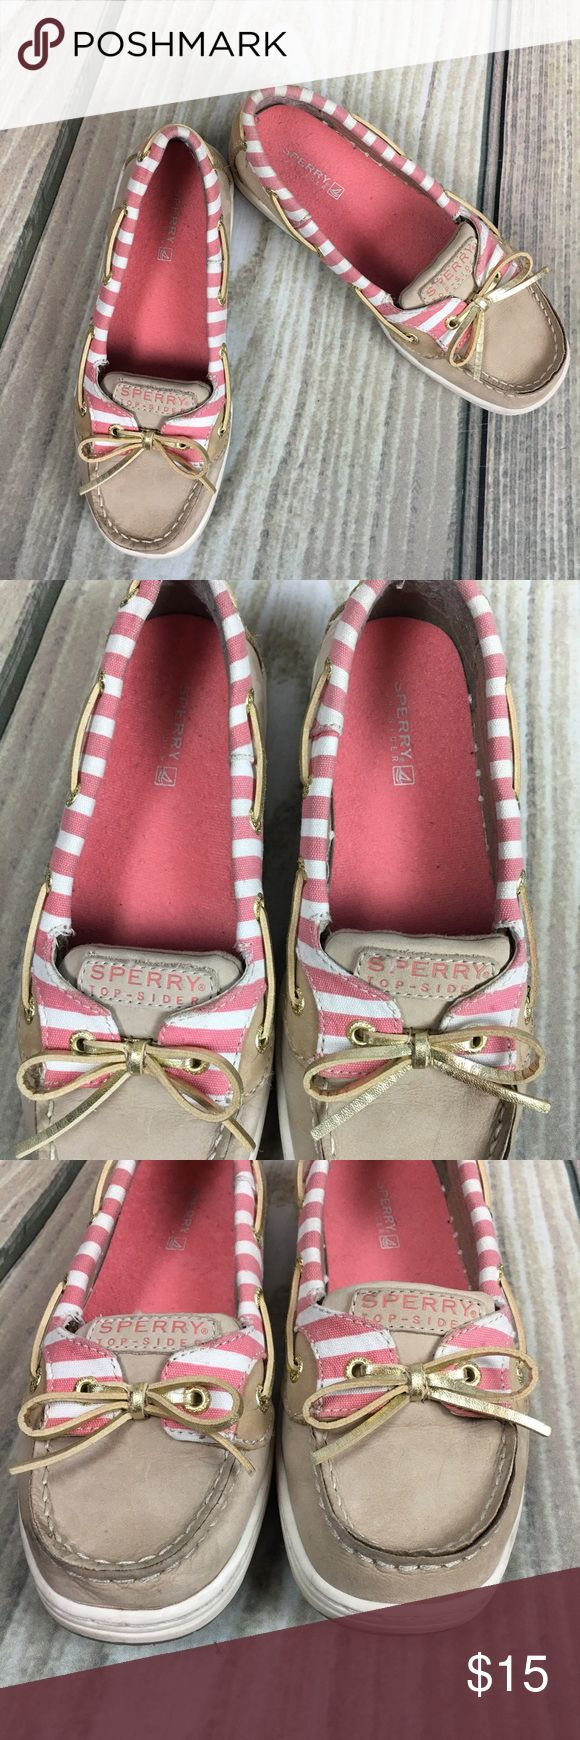 Sperry Kids Angelfish Boat shoes size 3M The cutest little sperry's for girls size 3. In good condition see pictures for wear. Sperry Top-Sider Shoes